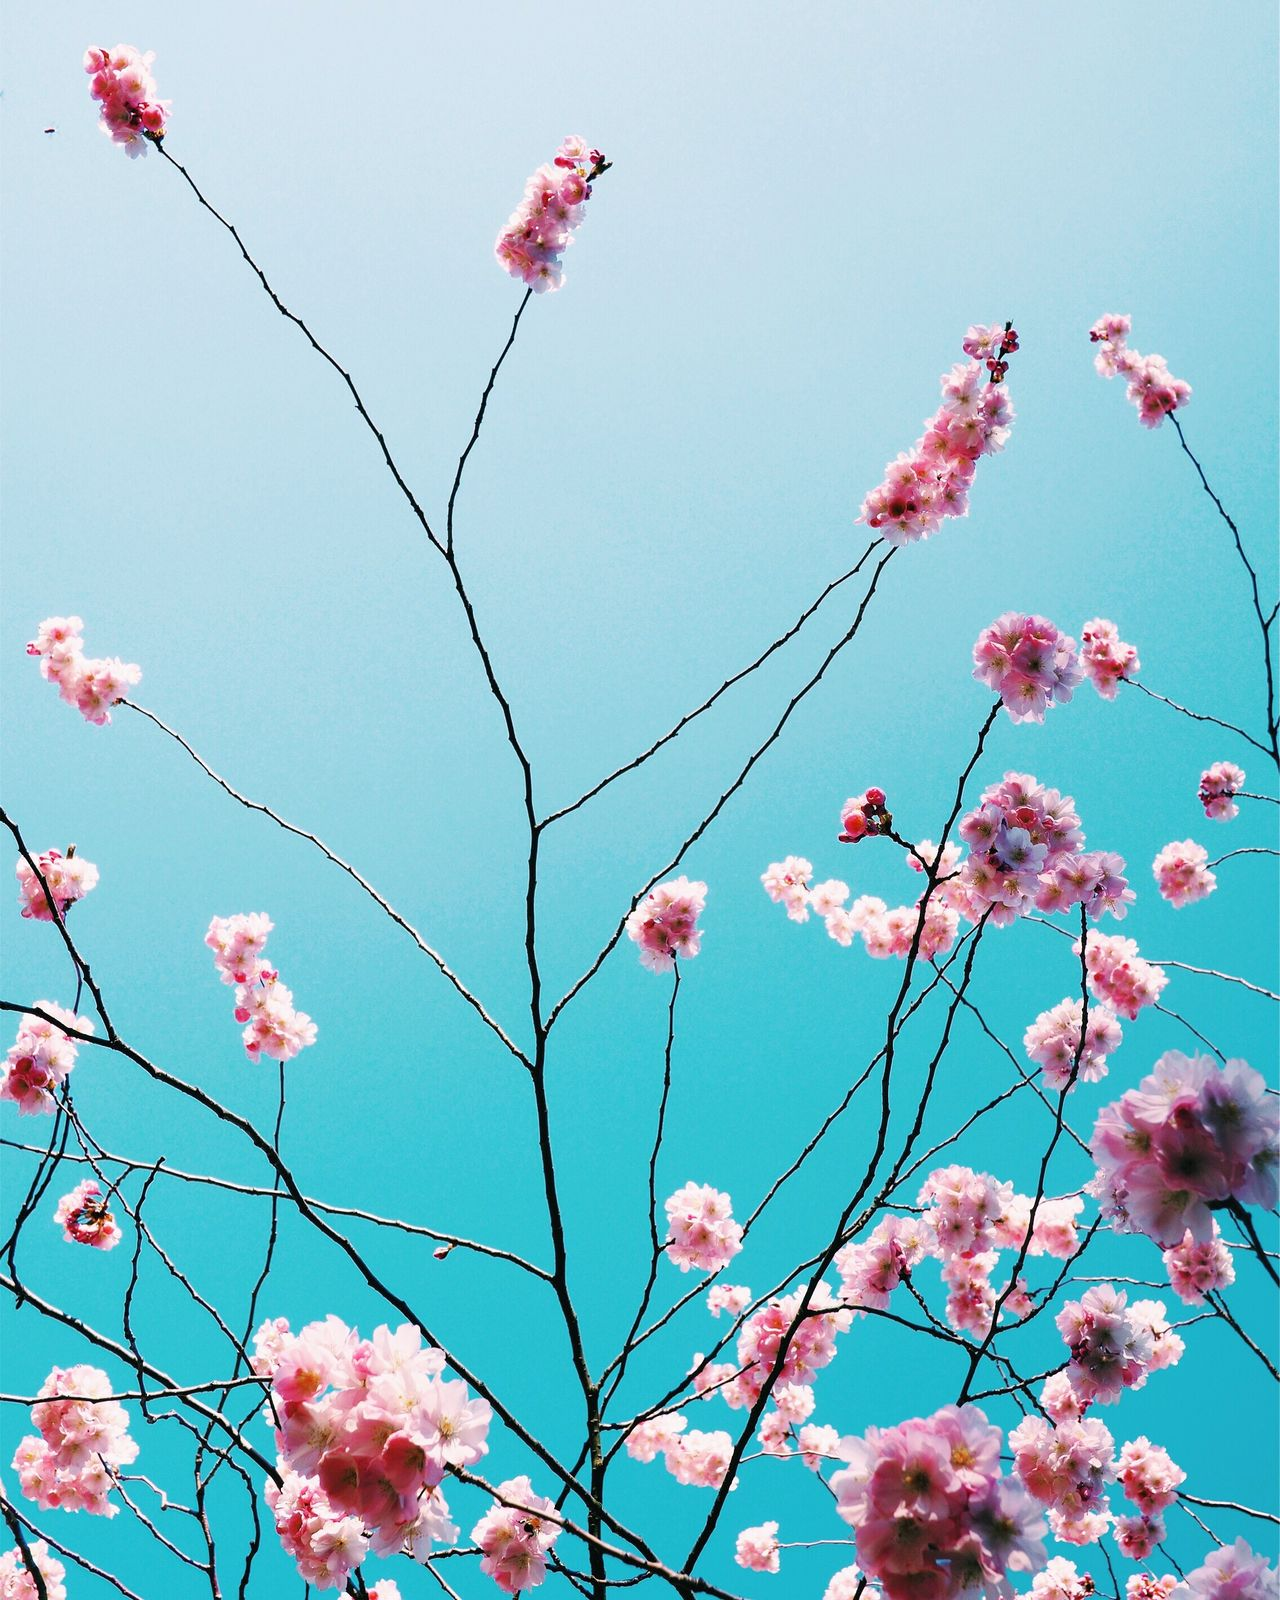 Flower Low Angle View Pink Color Nature Growth Beauty In Nature Sky Fragility Freshness Springtime Day Outdoors Branch Blooming Tree Close-up Magnolia